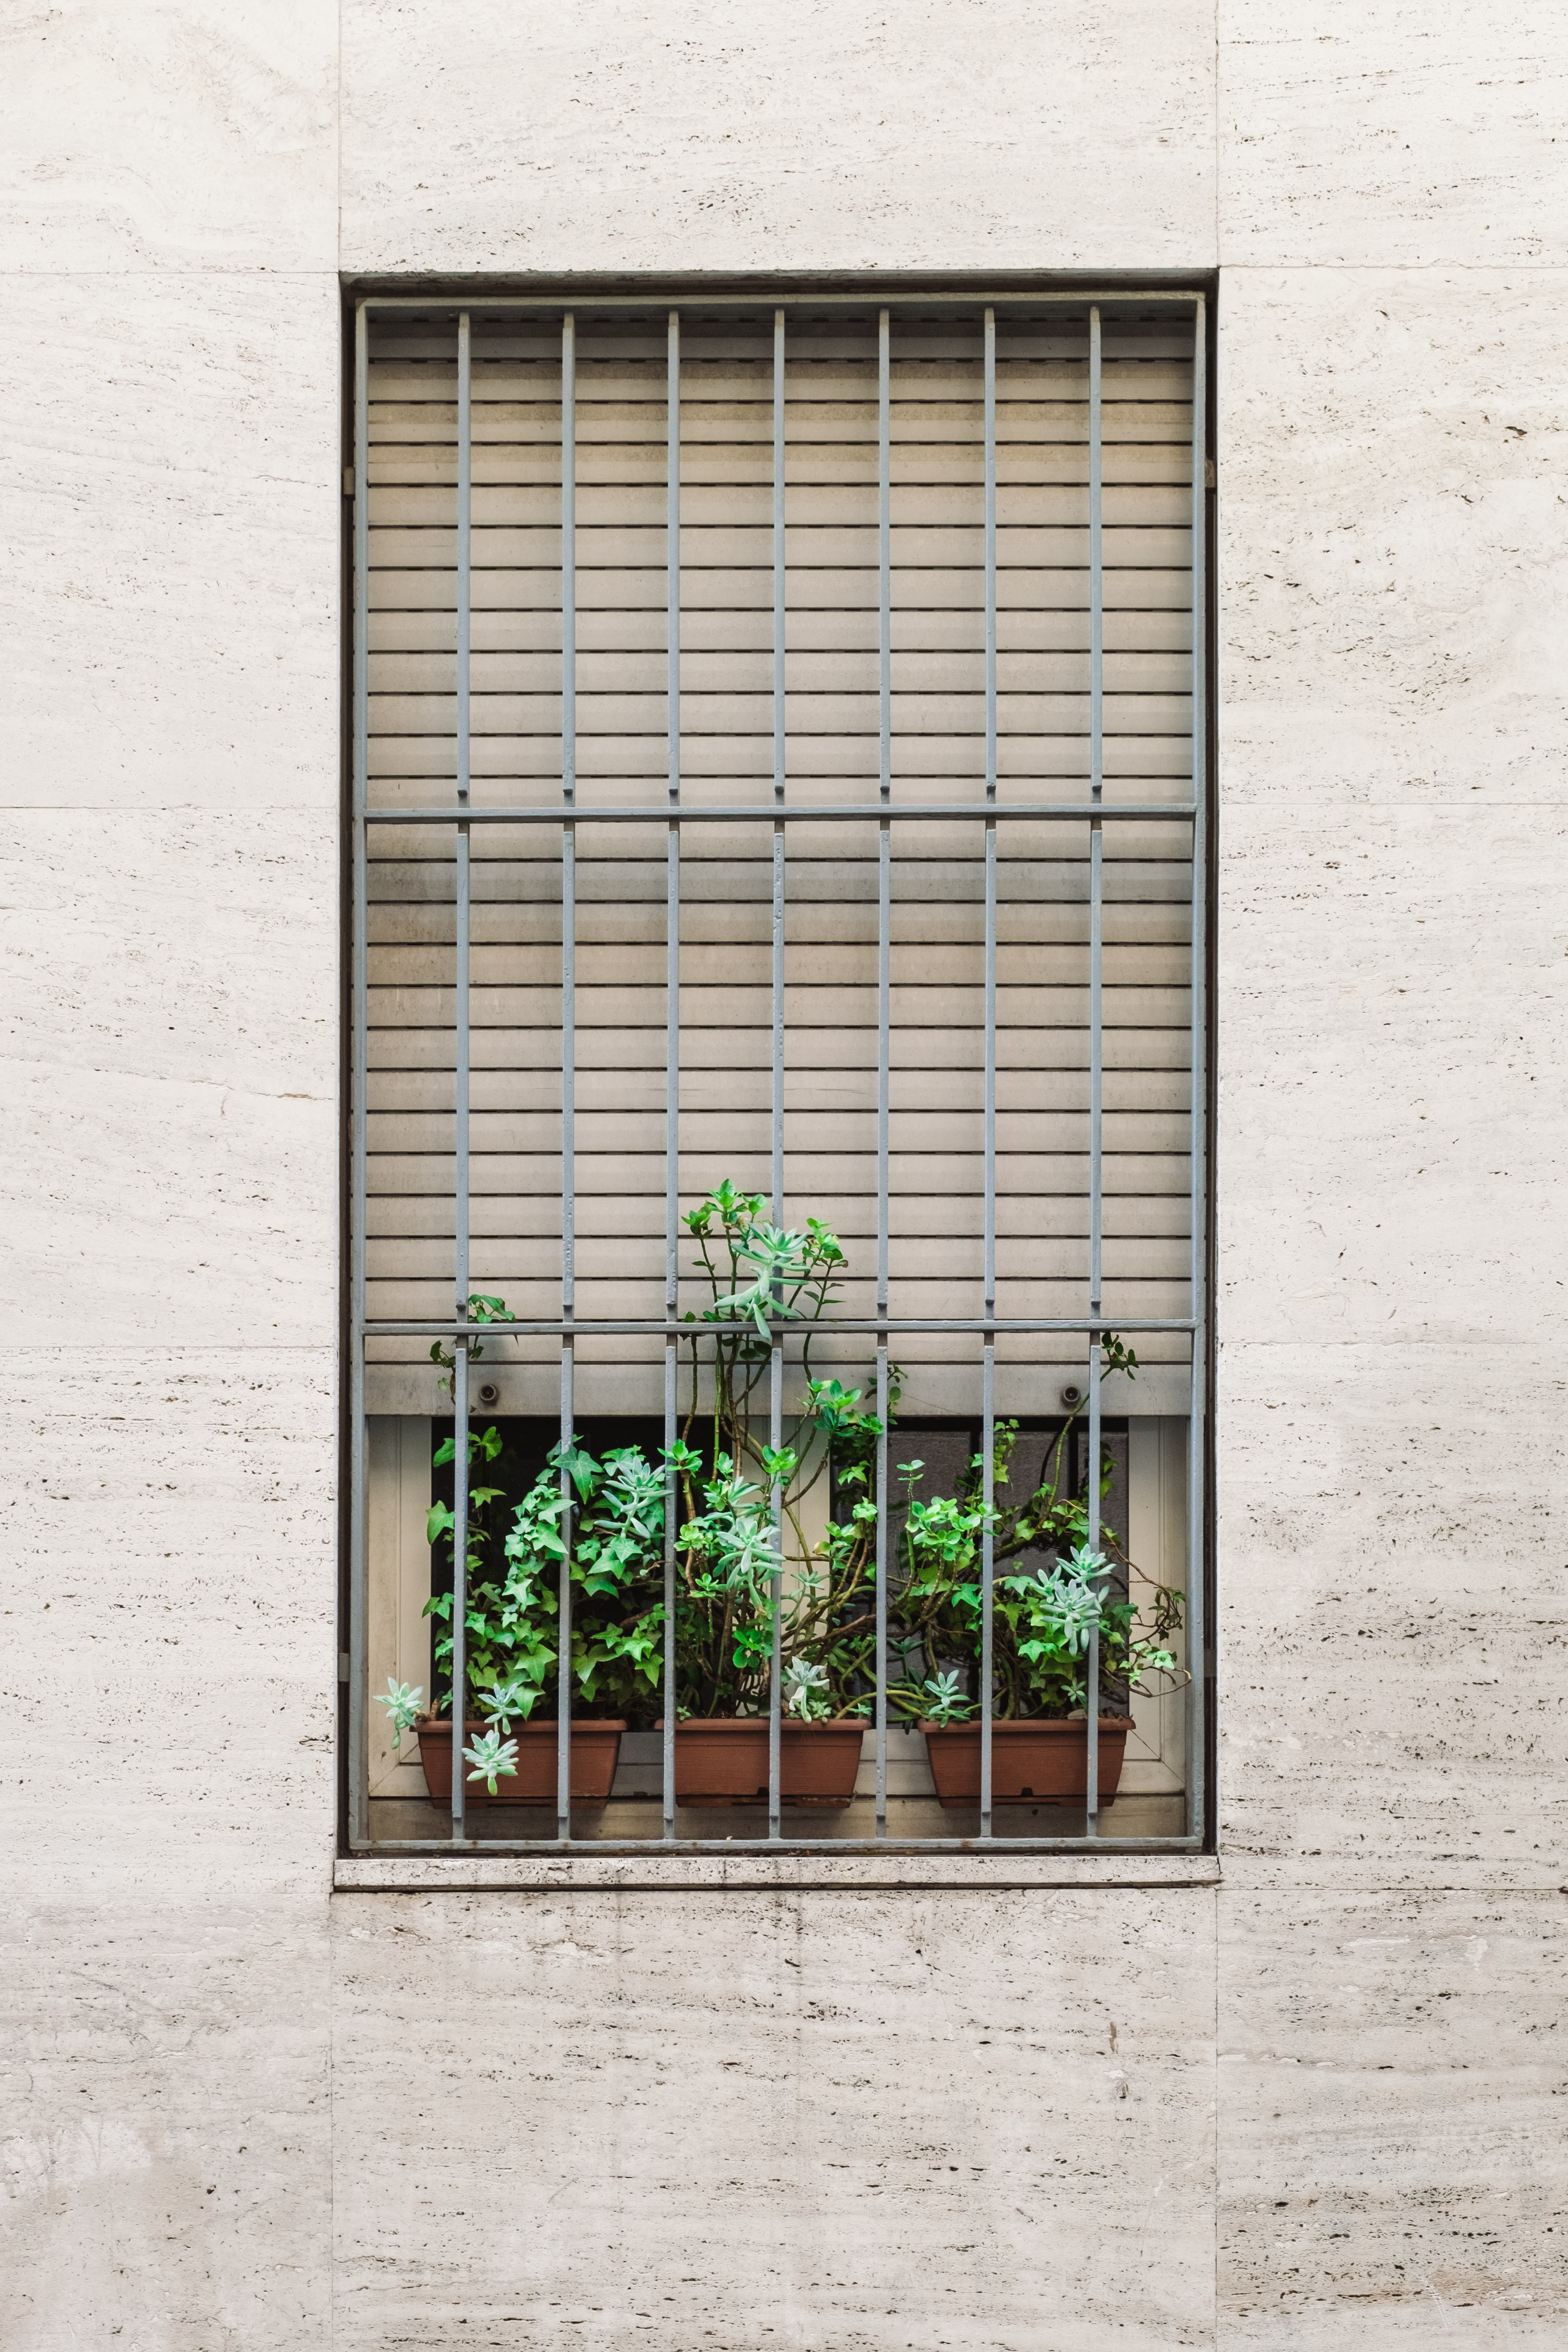 green plants on the window with steel grill